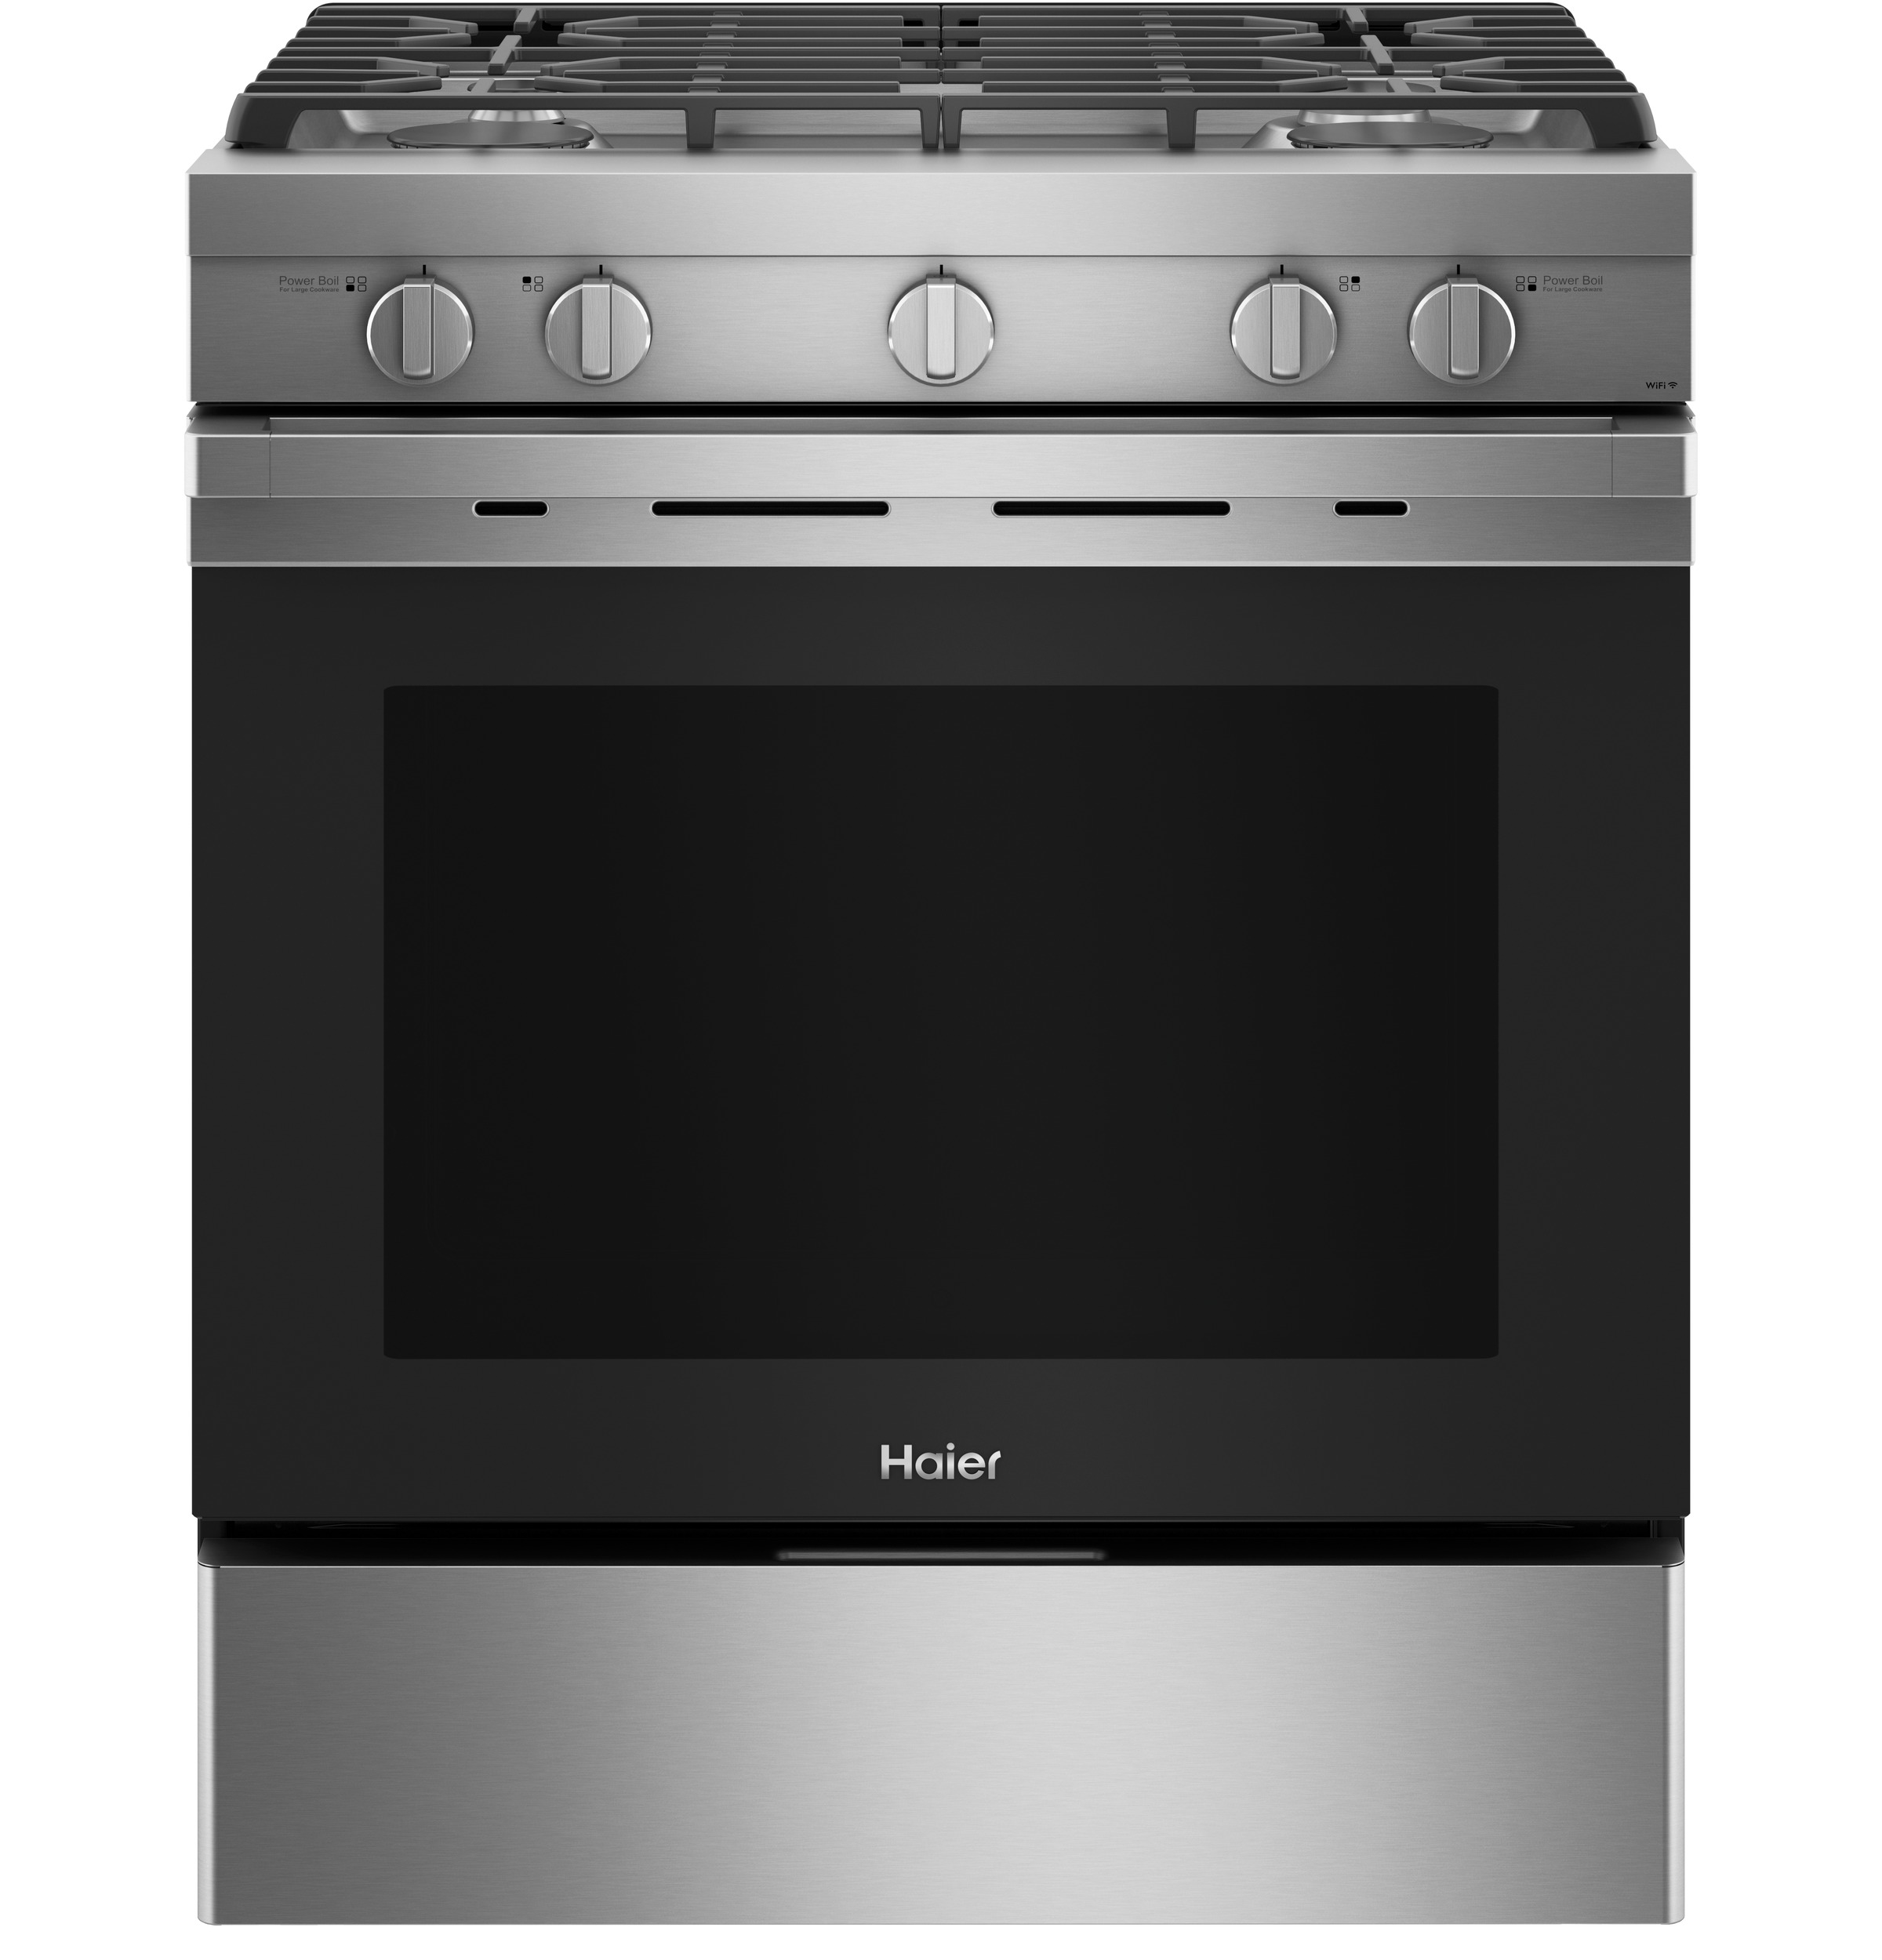 "Haier 30"" Smart Slide-In Gas Range with Convection"